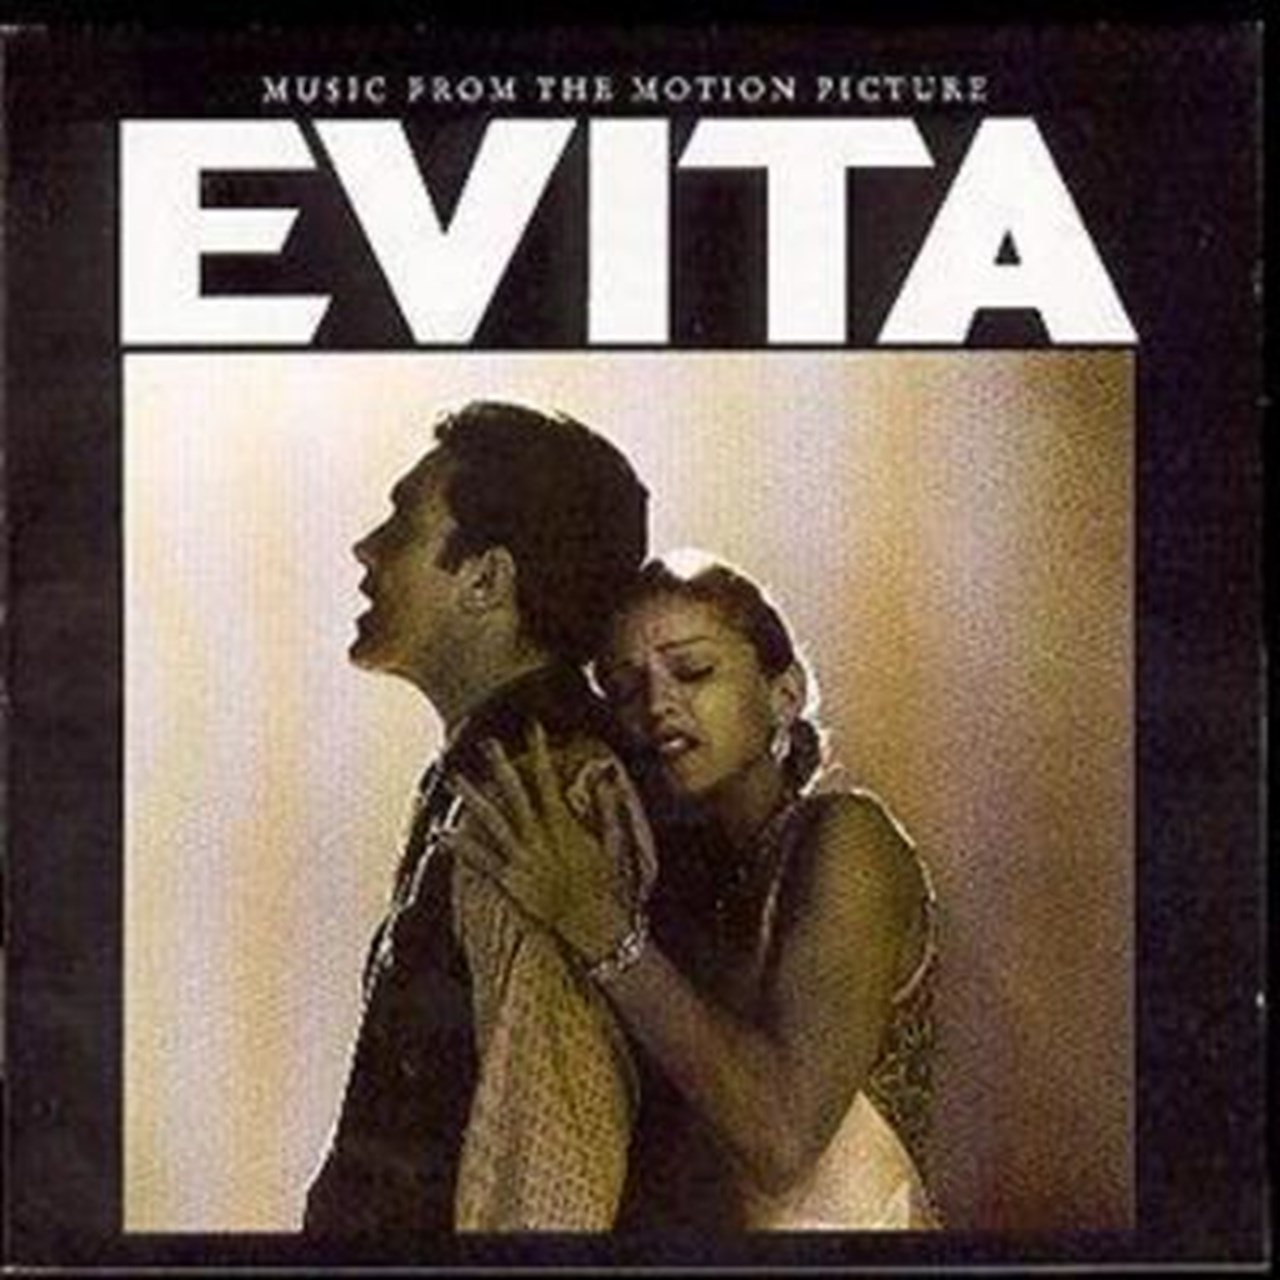 Evita: Music from the Motion Picture - 1